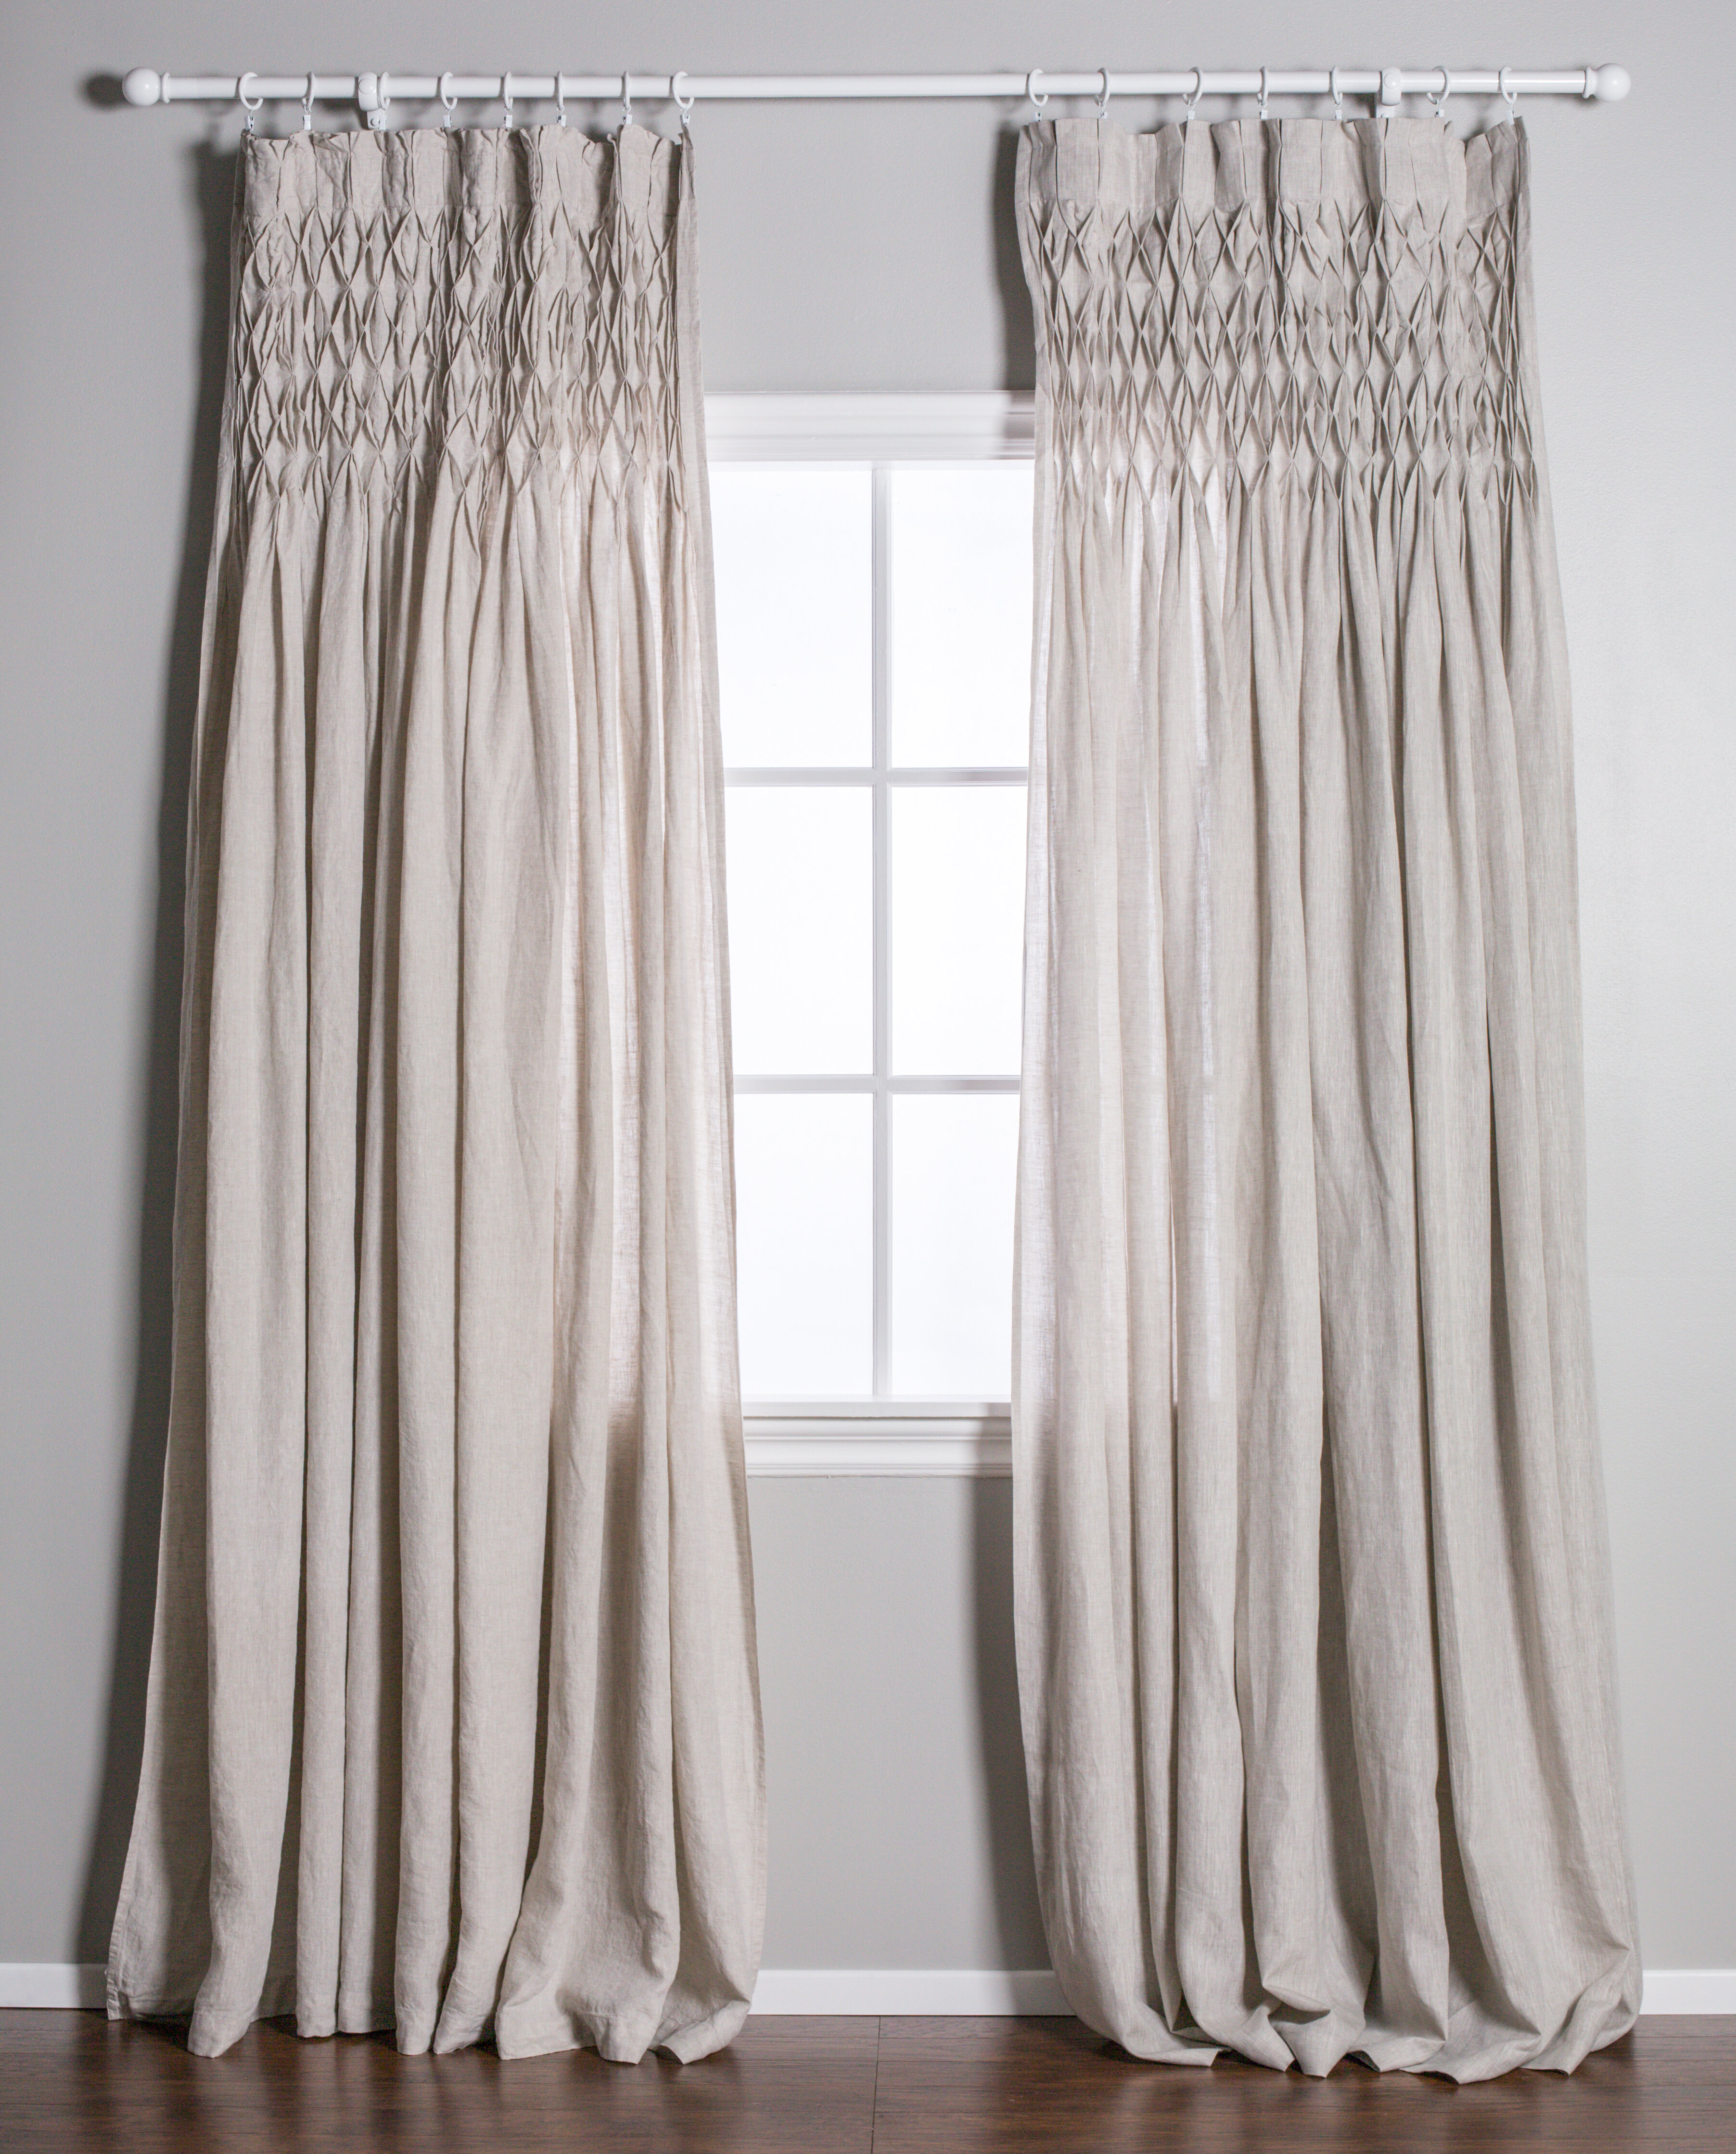 ideas pleat with hooks coffee to designs navy new how tables lovely pleated use of pinch curtains curtain hang